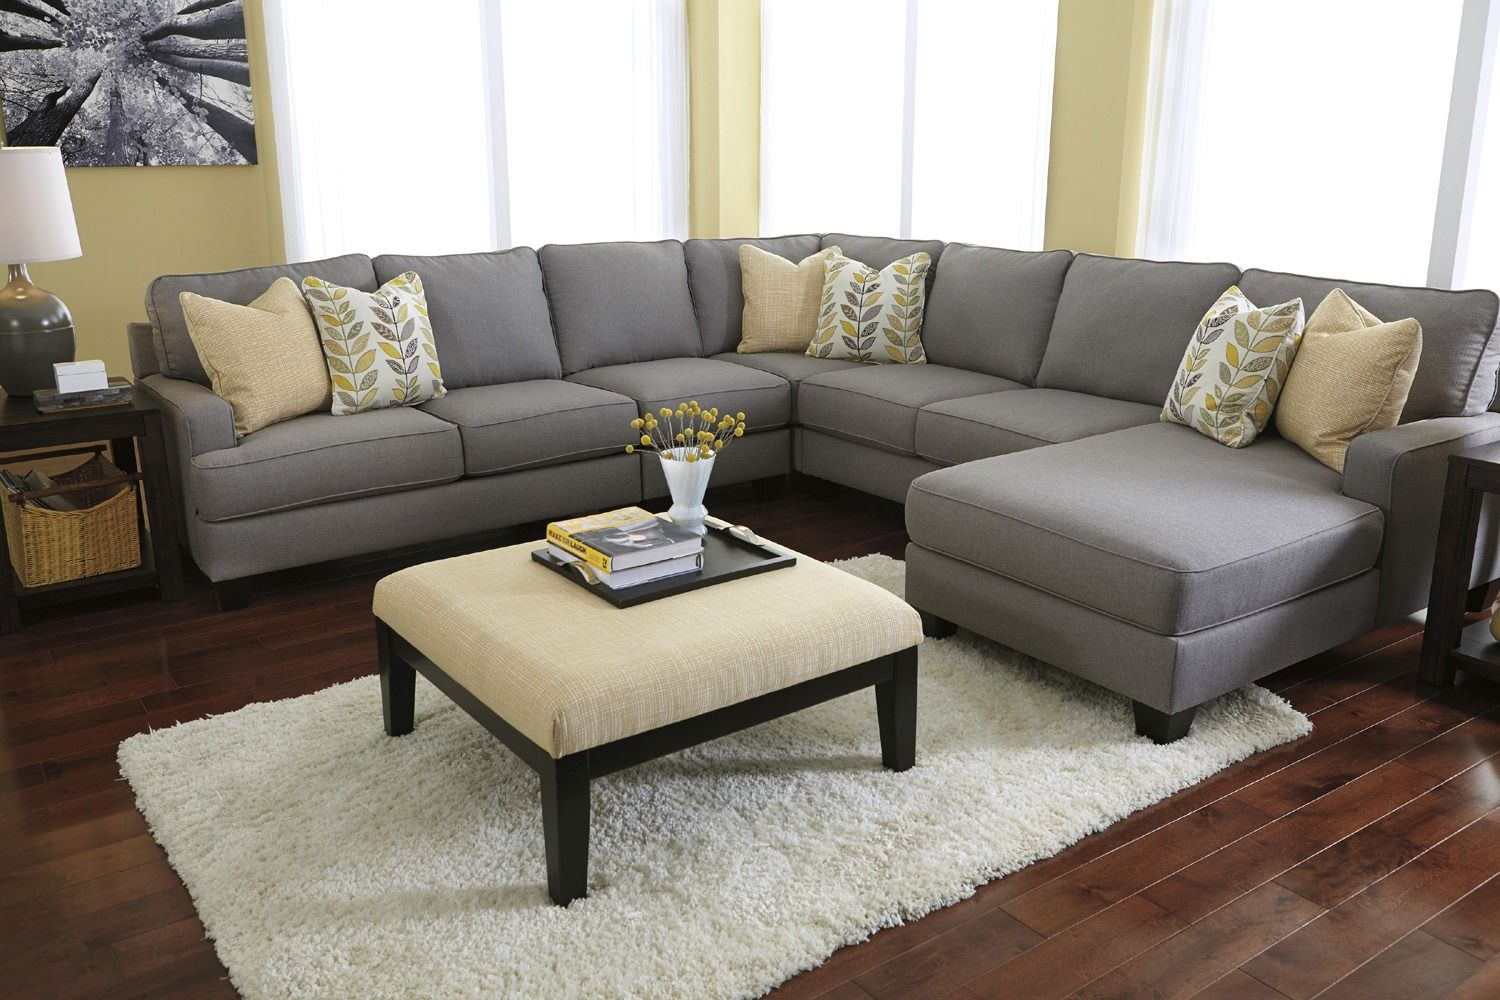 Best Chamberly Alloy Loveseat Sectional Living Room Grey 400 x 300